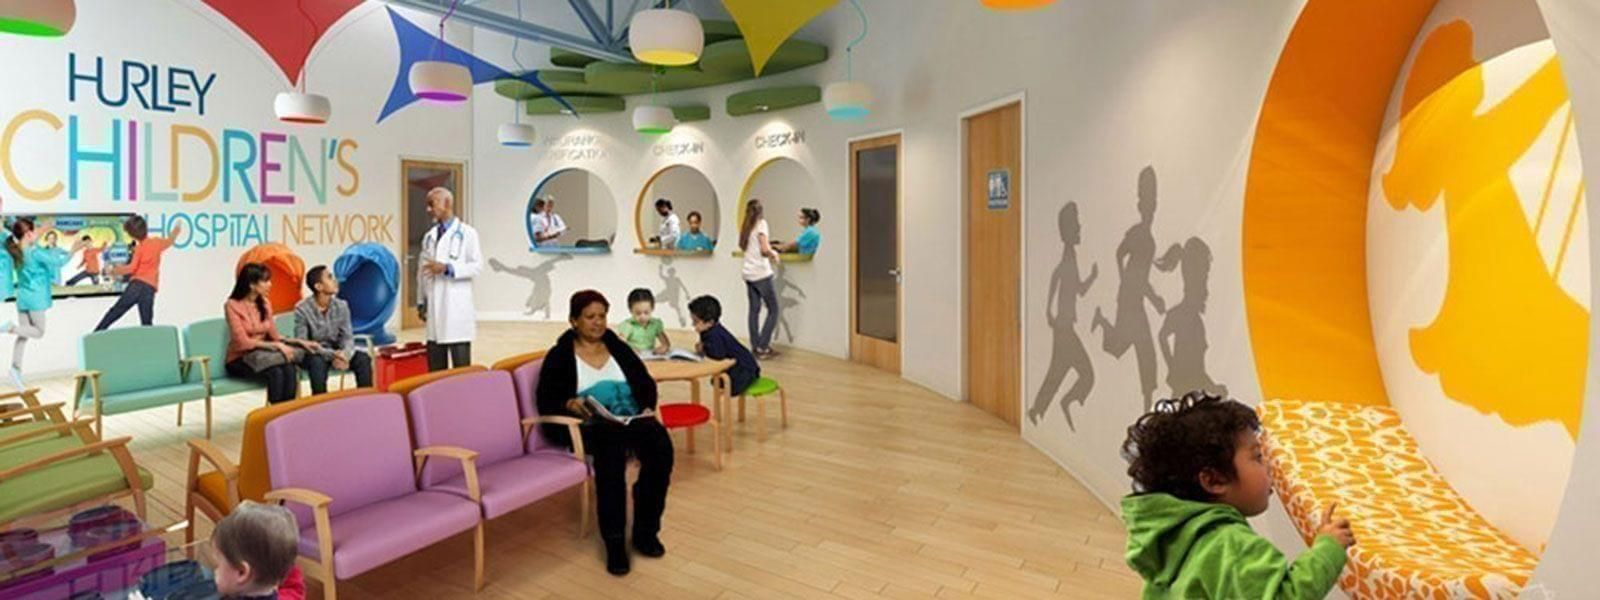 /images/locations/hurley-childrens-clinic/hurley-childrens-clinic-lobby.jpg